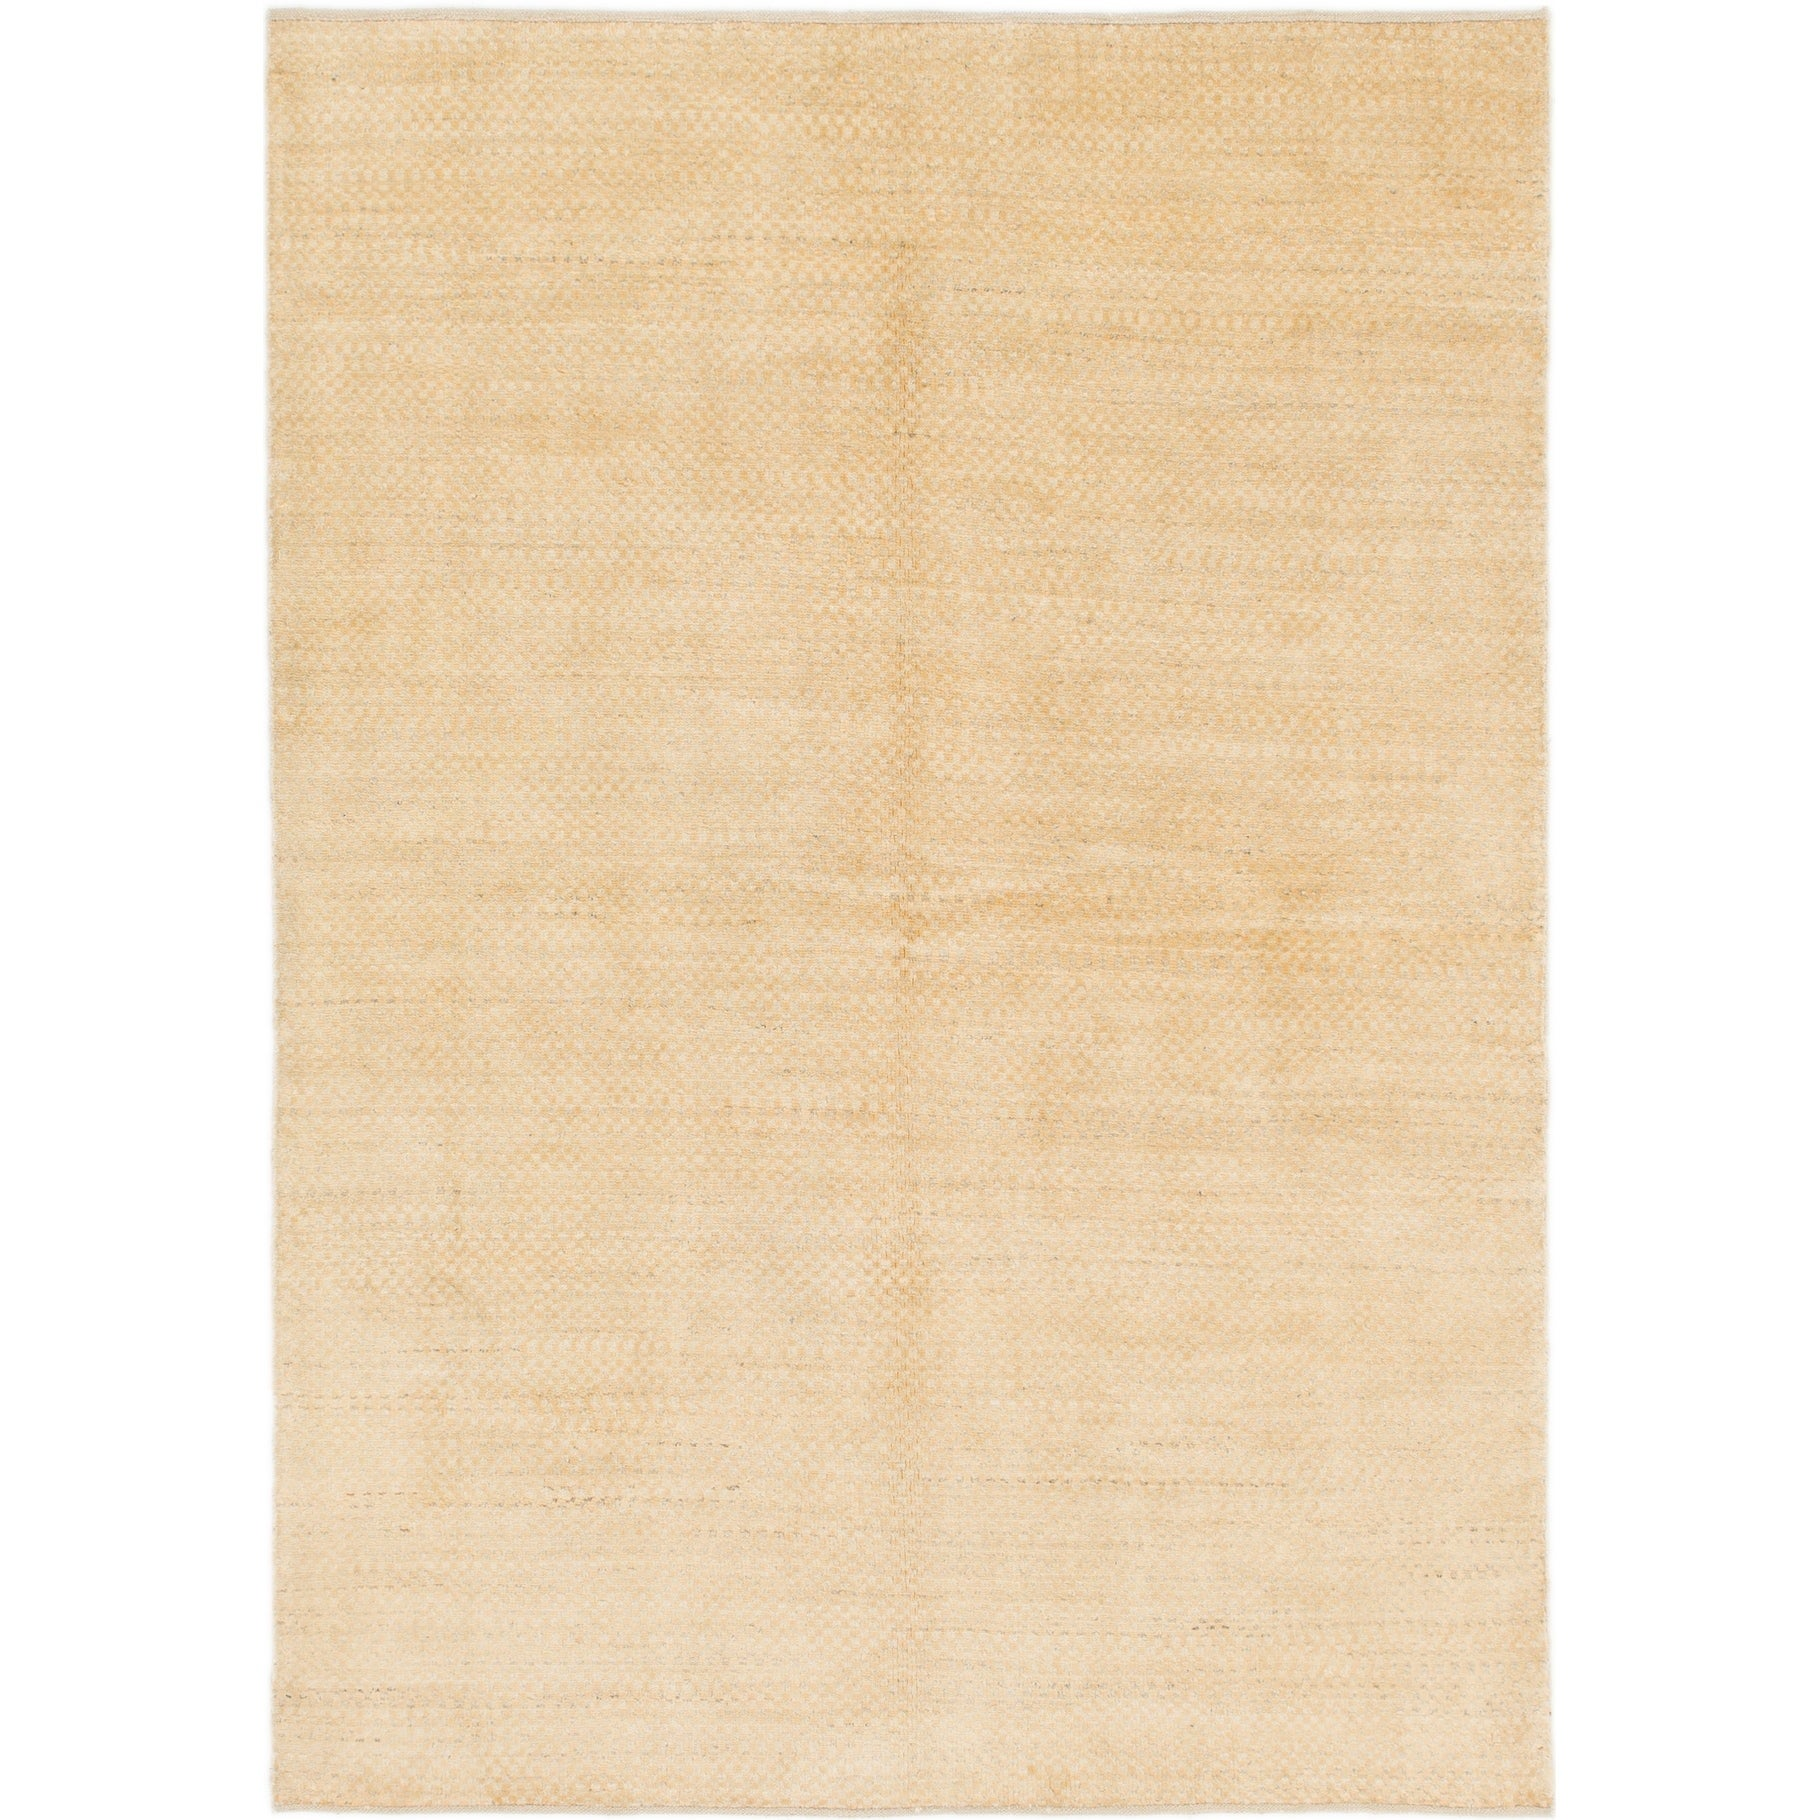 Hand Knotted Kashkuli Gabbeh Wool Area Rug - 5 5 x 7 7 (Gold - 5 5 x 7 7)